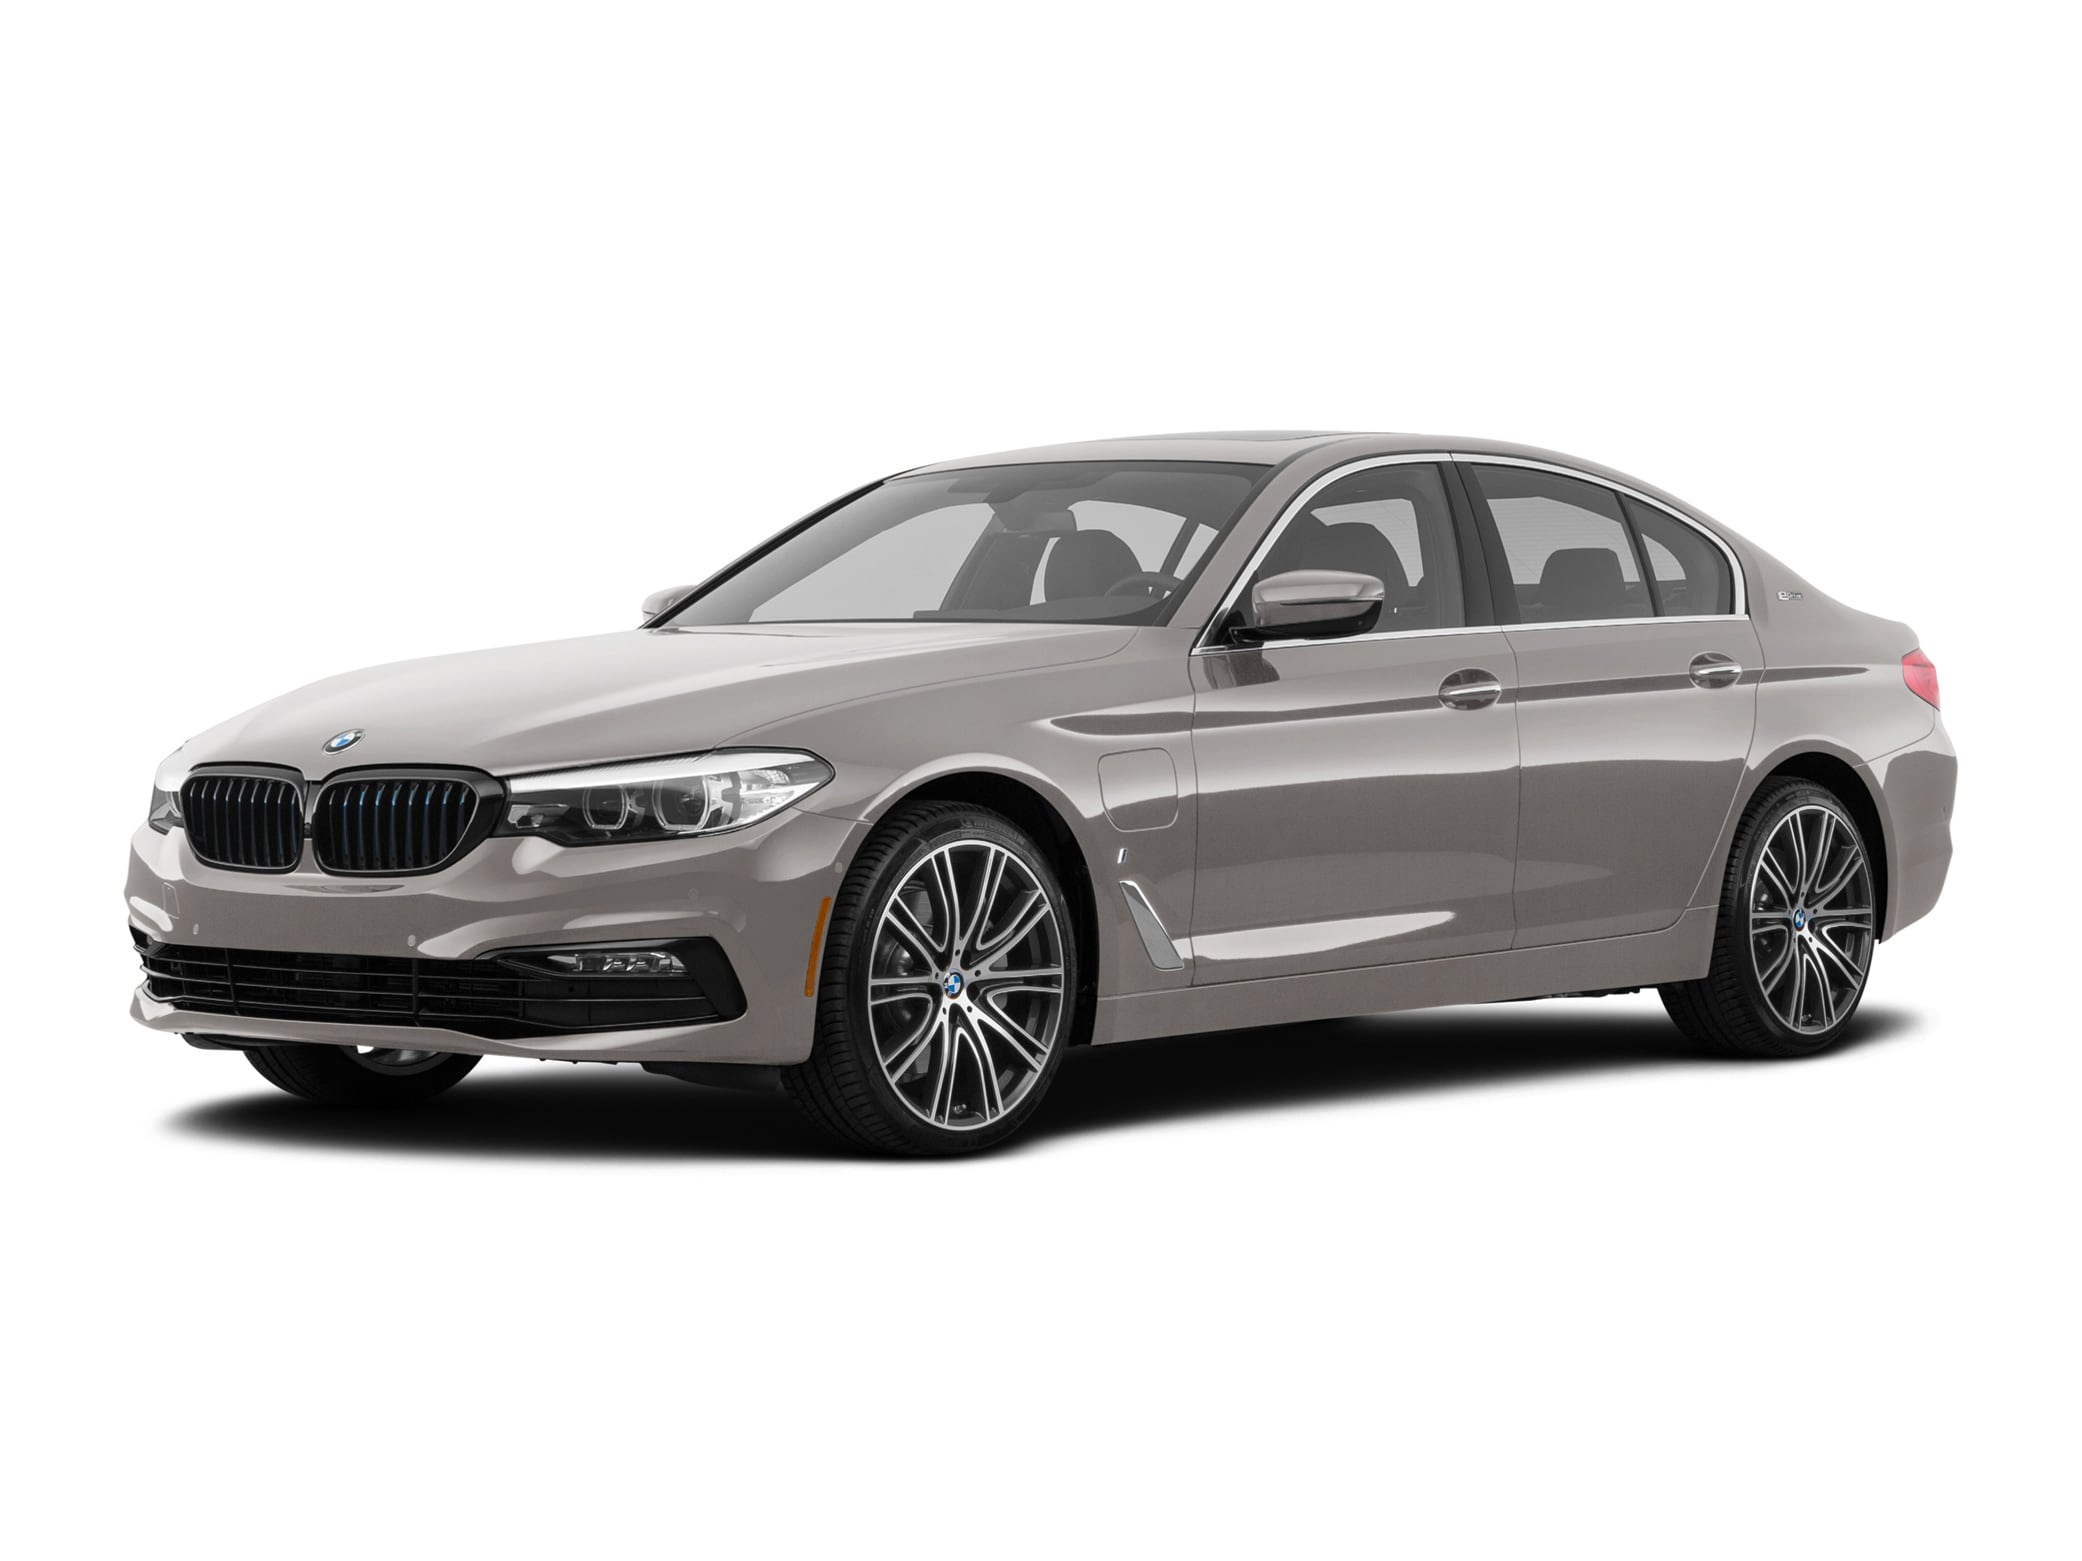 2019 BMW 530e xDrive iPerformance Sedan Plattsburgh, NY